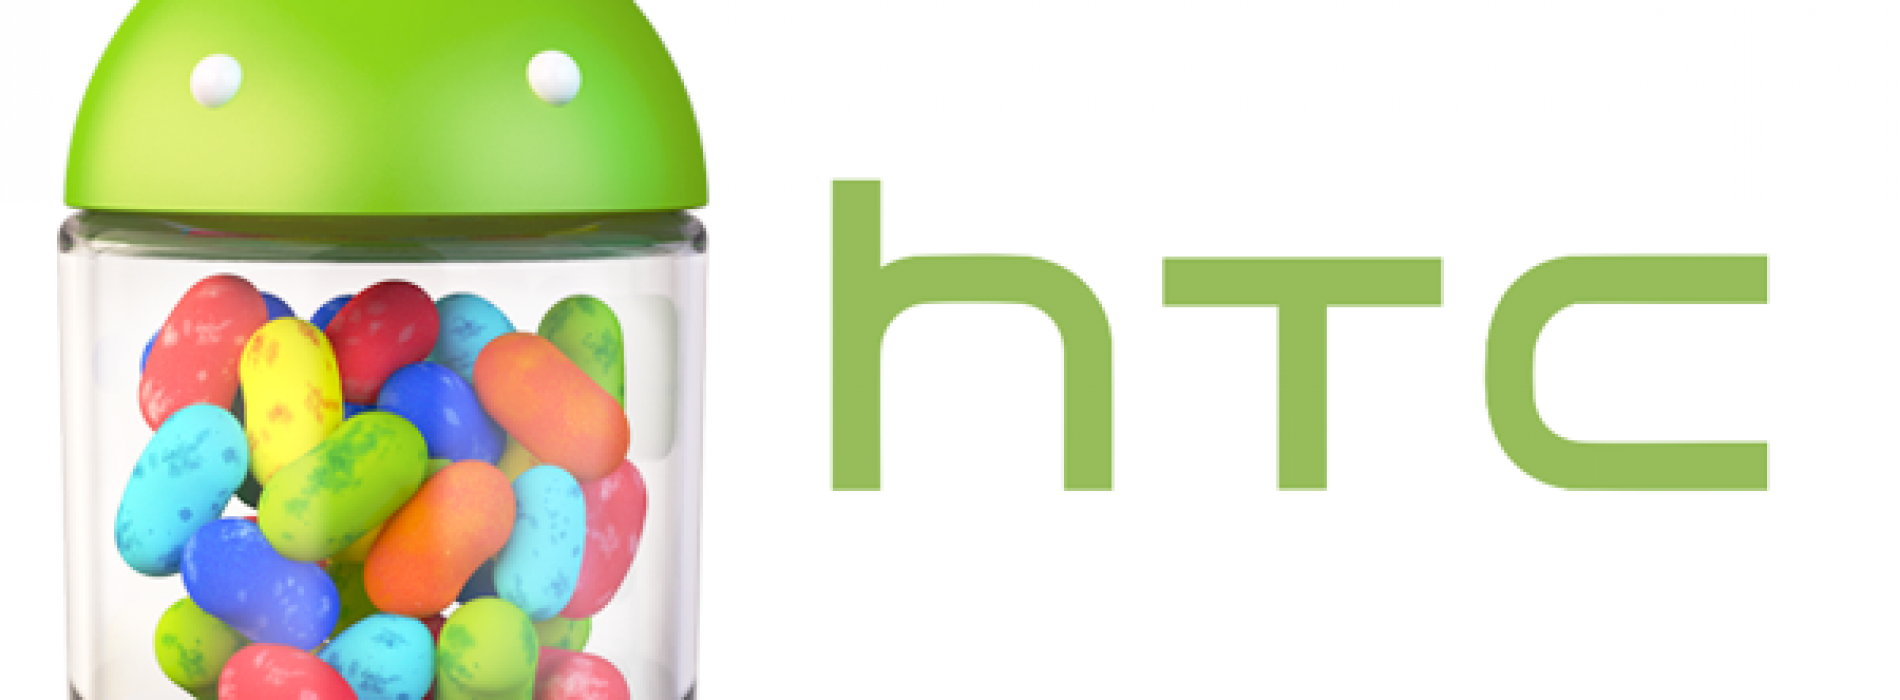 HTC confirms Android 4.1 for One X, One XL and One S